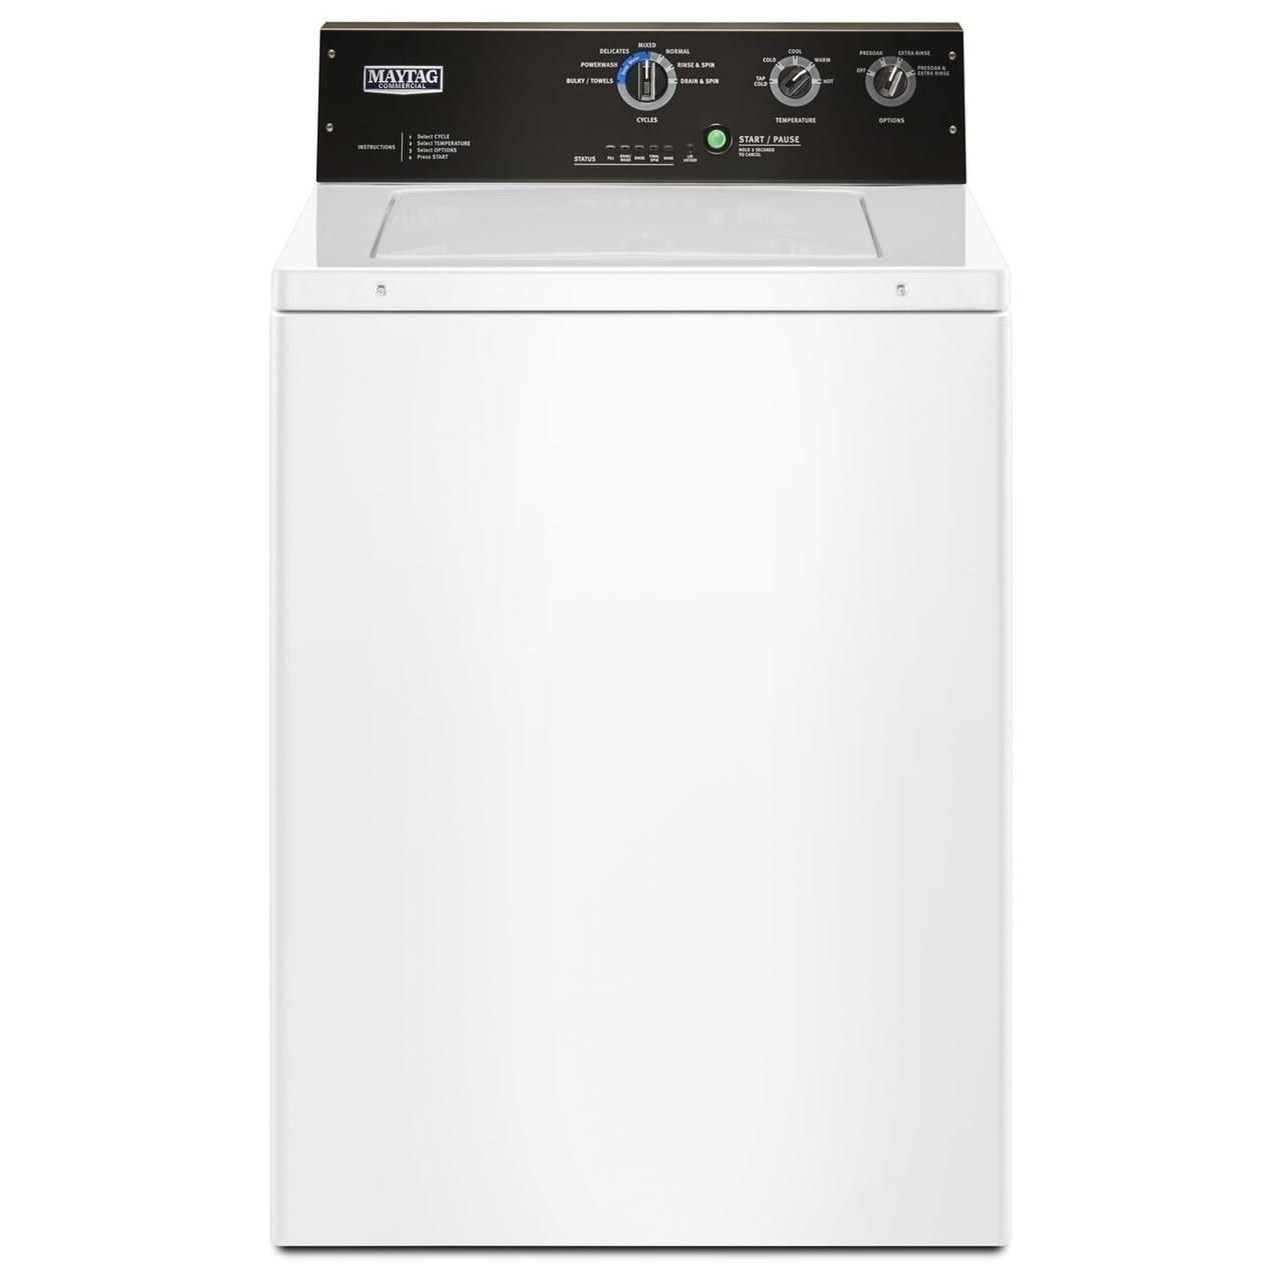 Top Load Washers 3.5 cu. ft. Commercial-Grade Residential Agi by Maytag at Furniture and ApplianceMart